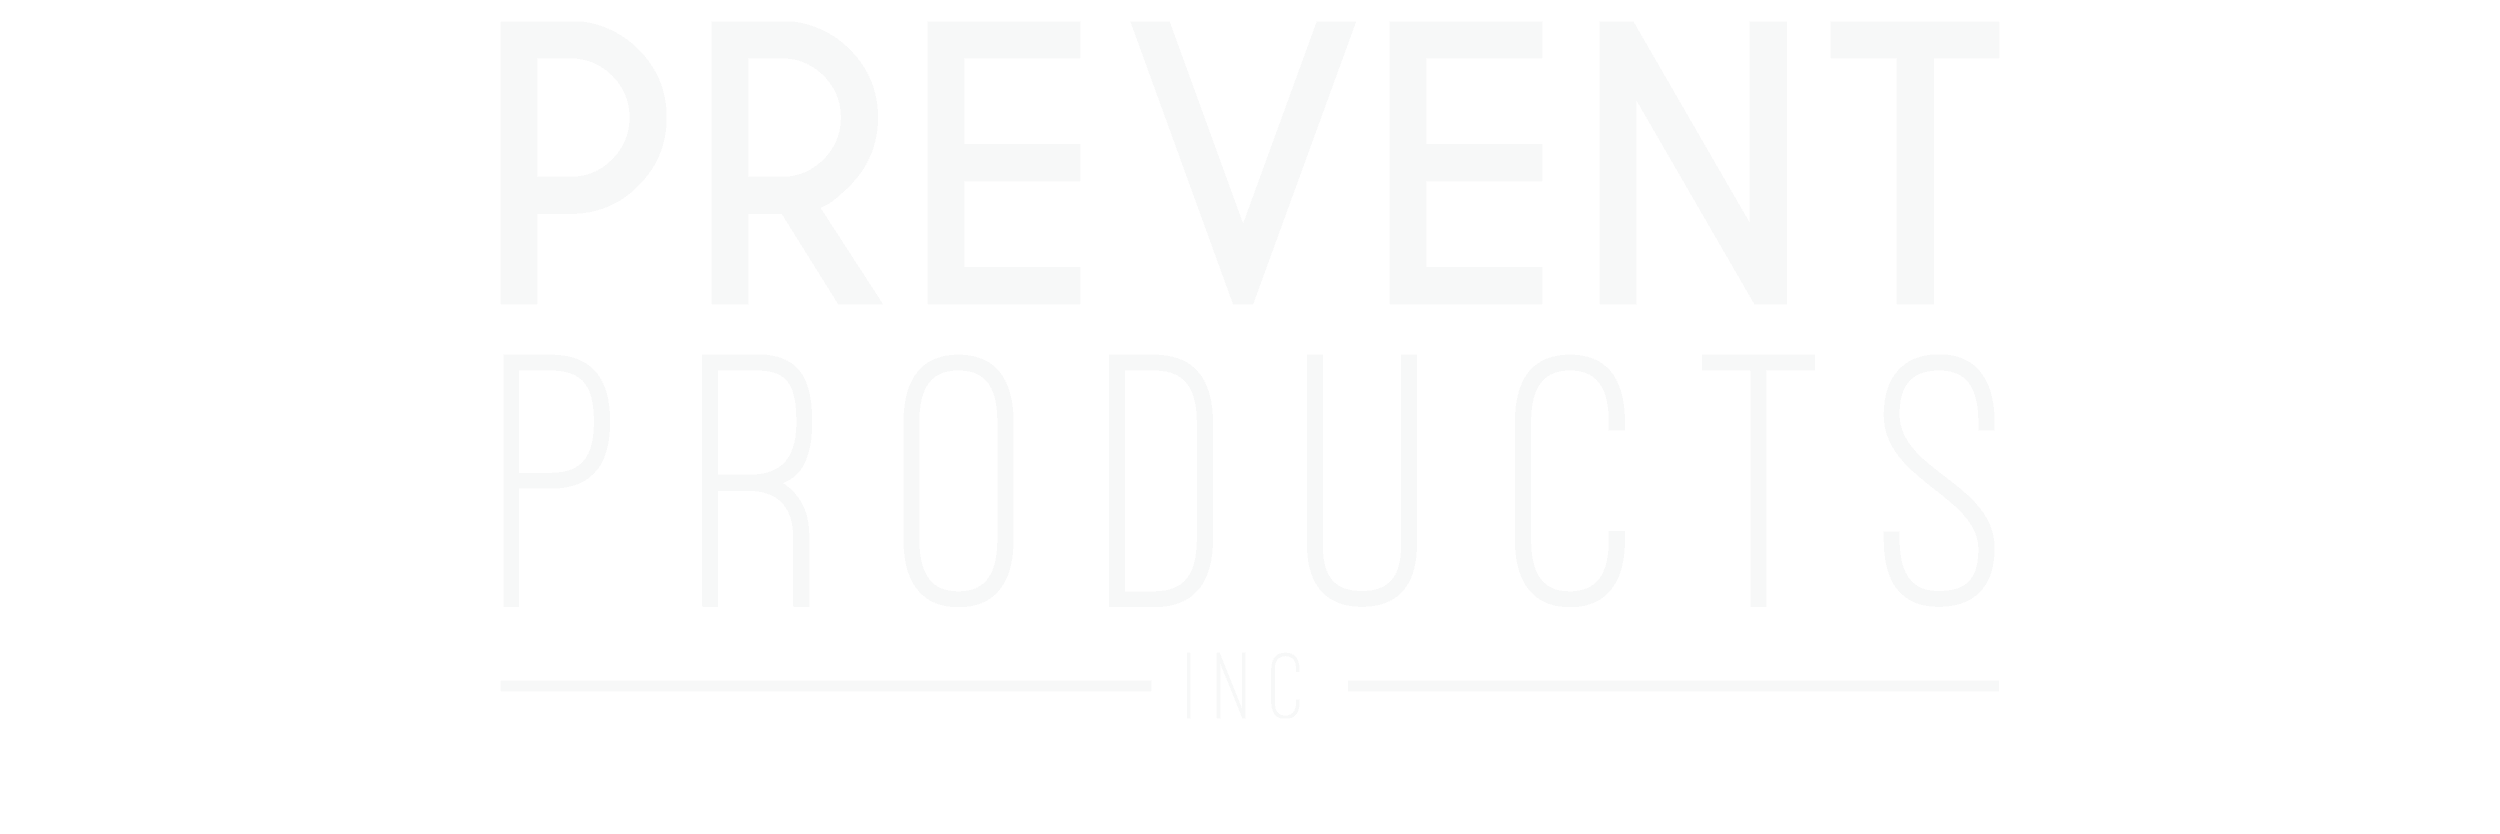 Prevent Products Icon